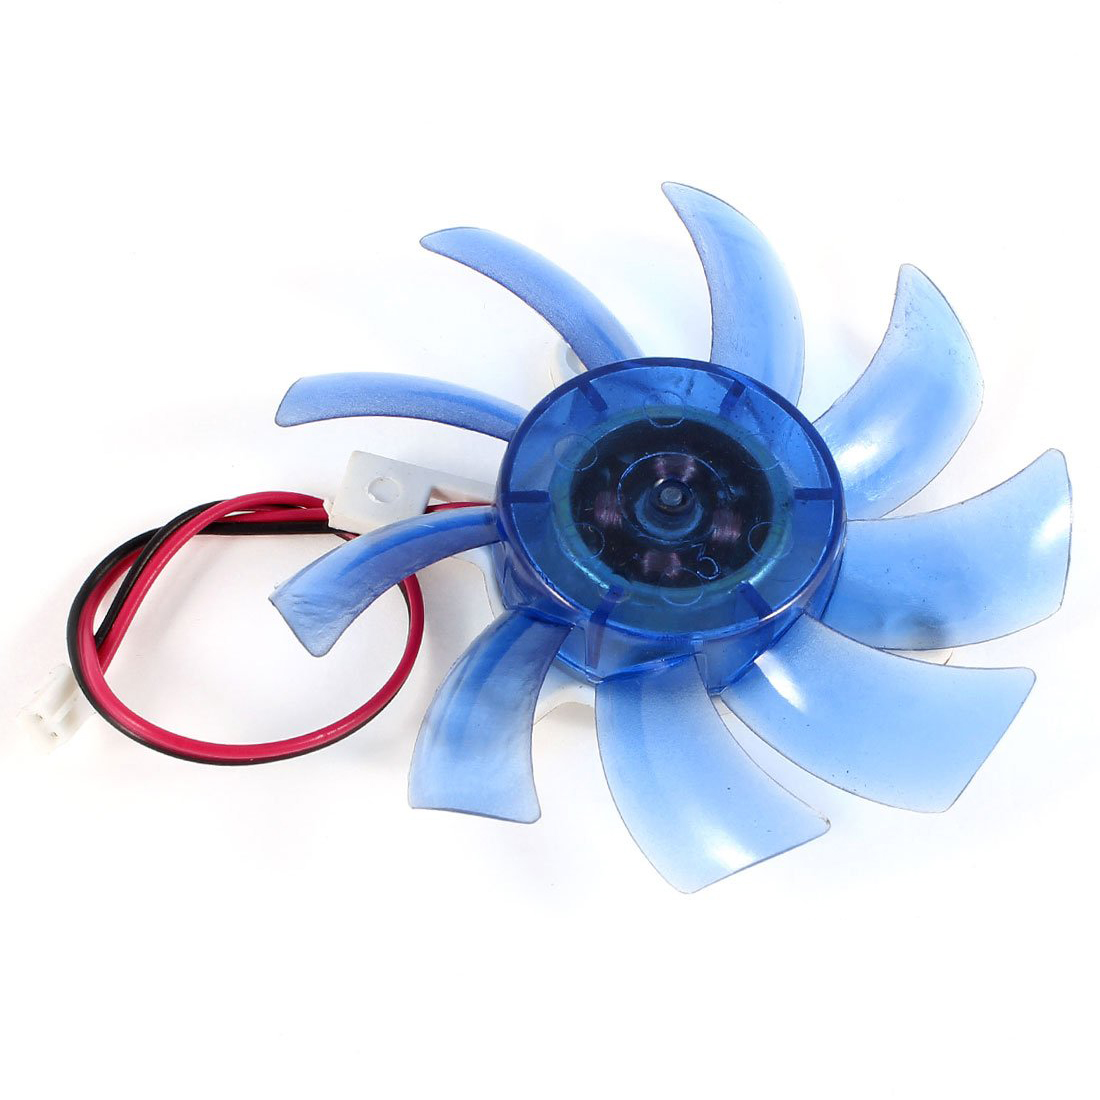 75mm 12VDC Blue Plastic VGA Video Card Cooling Fan Cooler for Computer free shipping diameter 75mm computer vga cooler video card fan for his r7 260x hd5870 5850 graphics card cooling